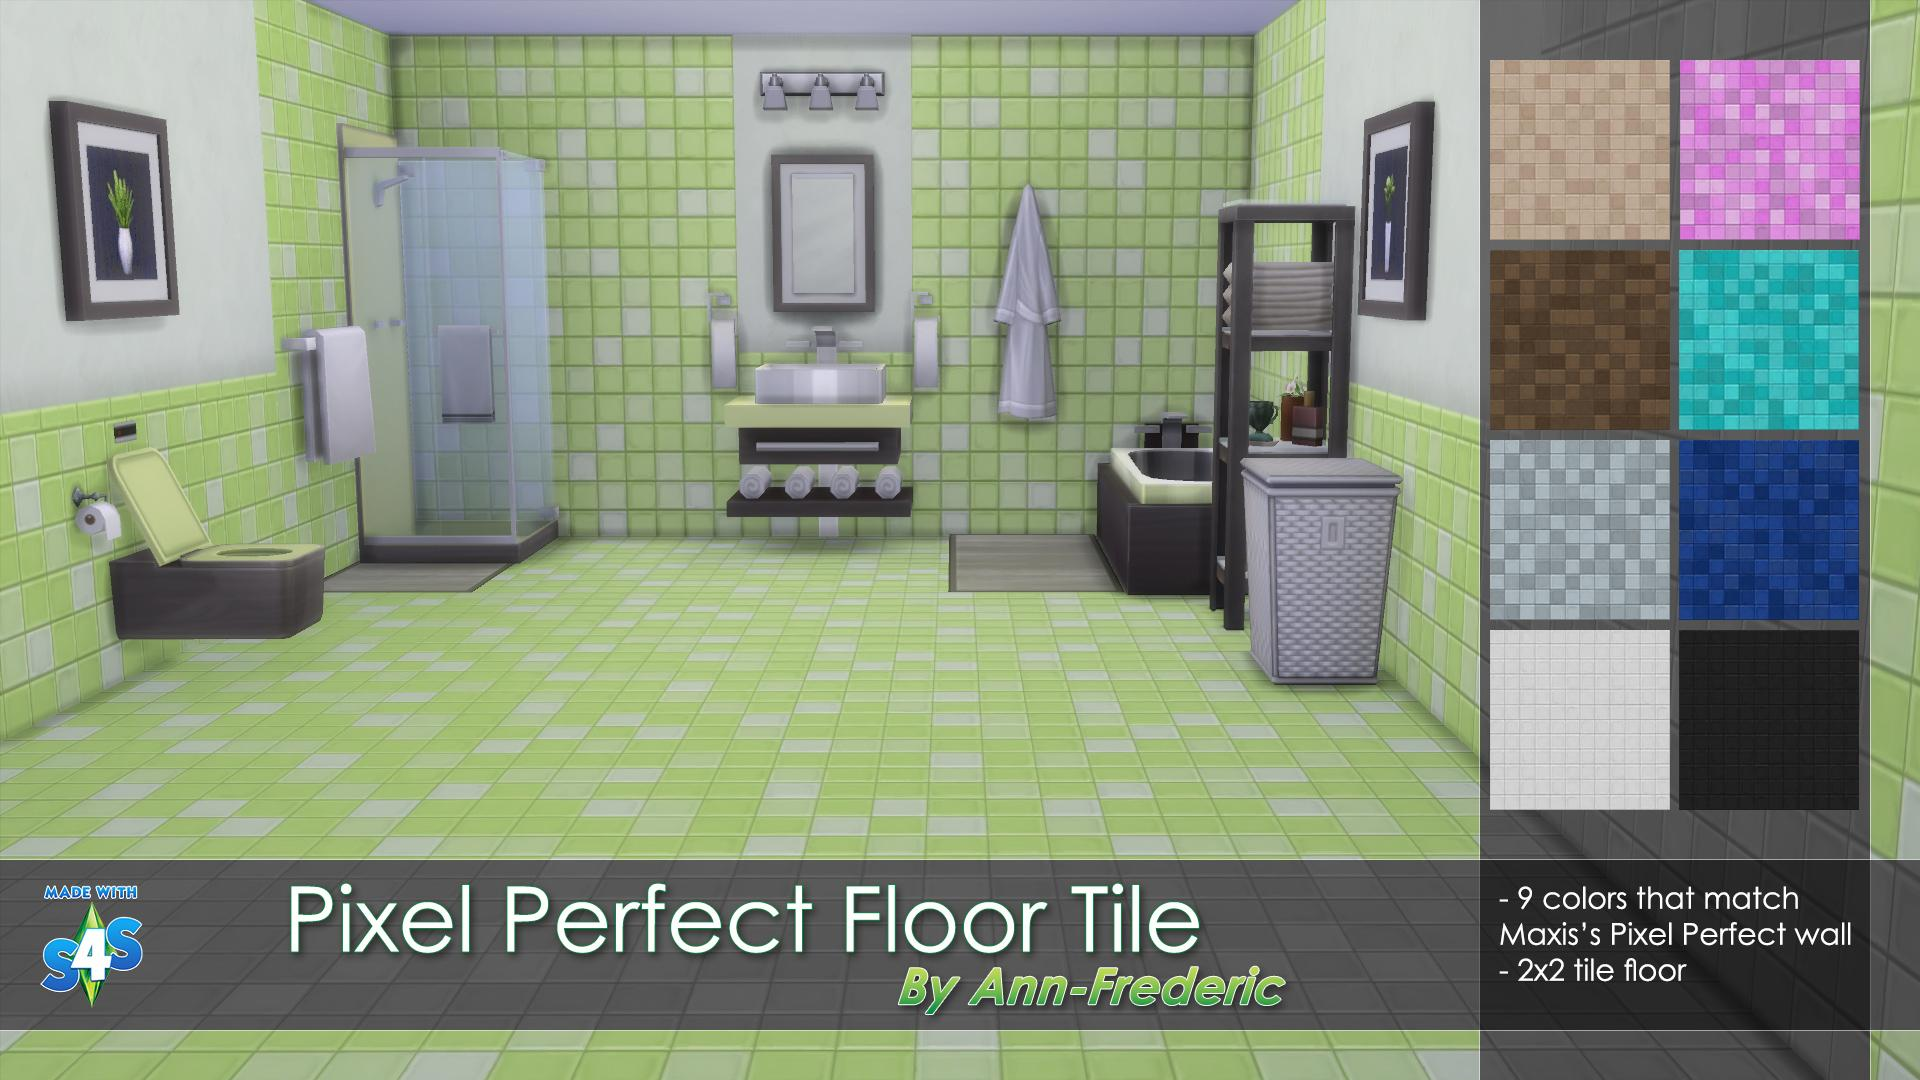 Pixel Perfect Floor Tile, match Maxis's wall